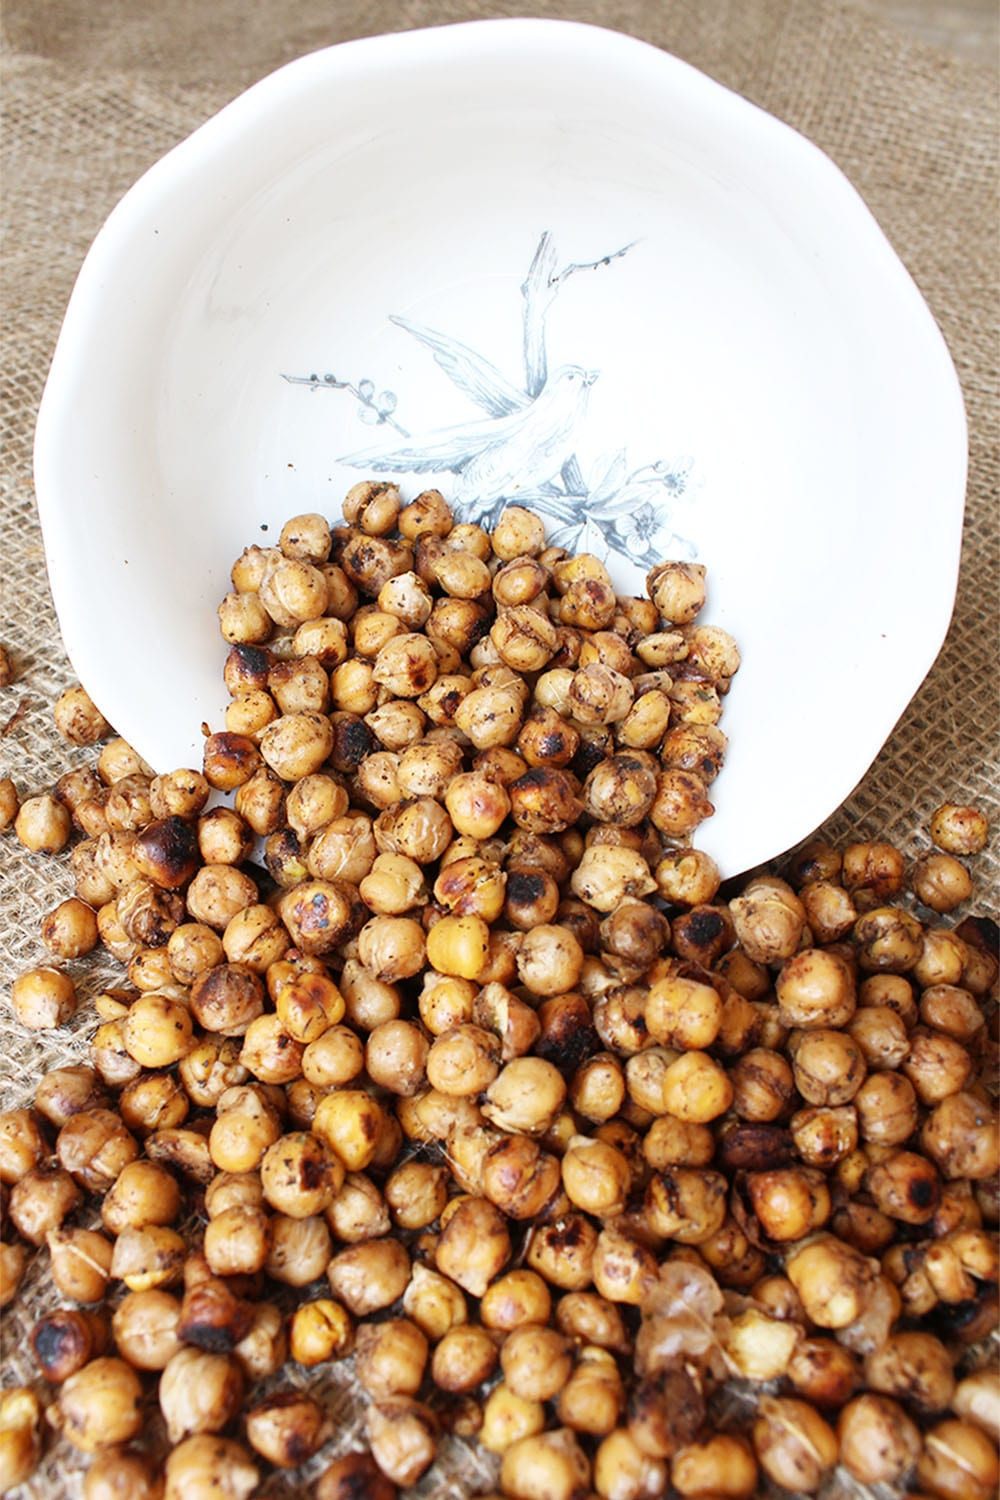 What are the best plant protein foods and just how much protein is in them? With a whopping 14.5 grams of protein per cup, chickpeas are definitely one of them. And they're so versatile! These baked balsamic chickpeas taste fantastic with pasta, rice, mashed potatoes, sprinkled on a salad or on their own as a snack!